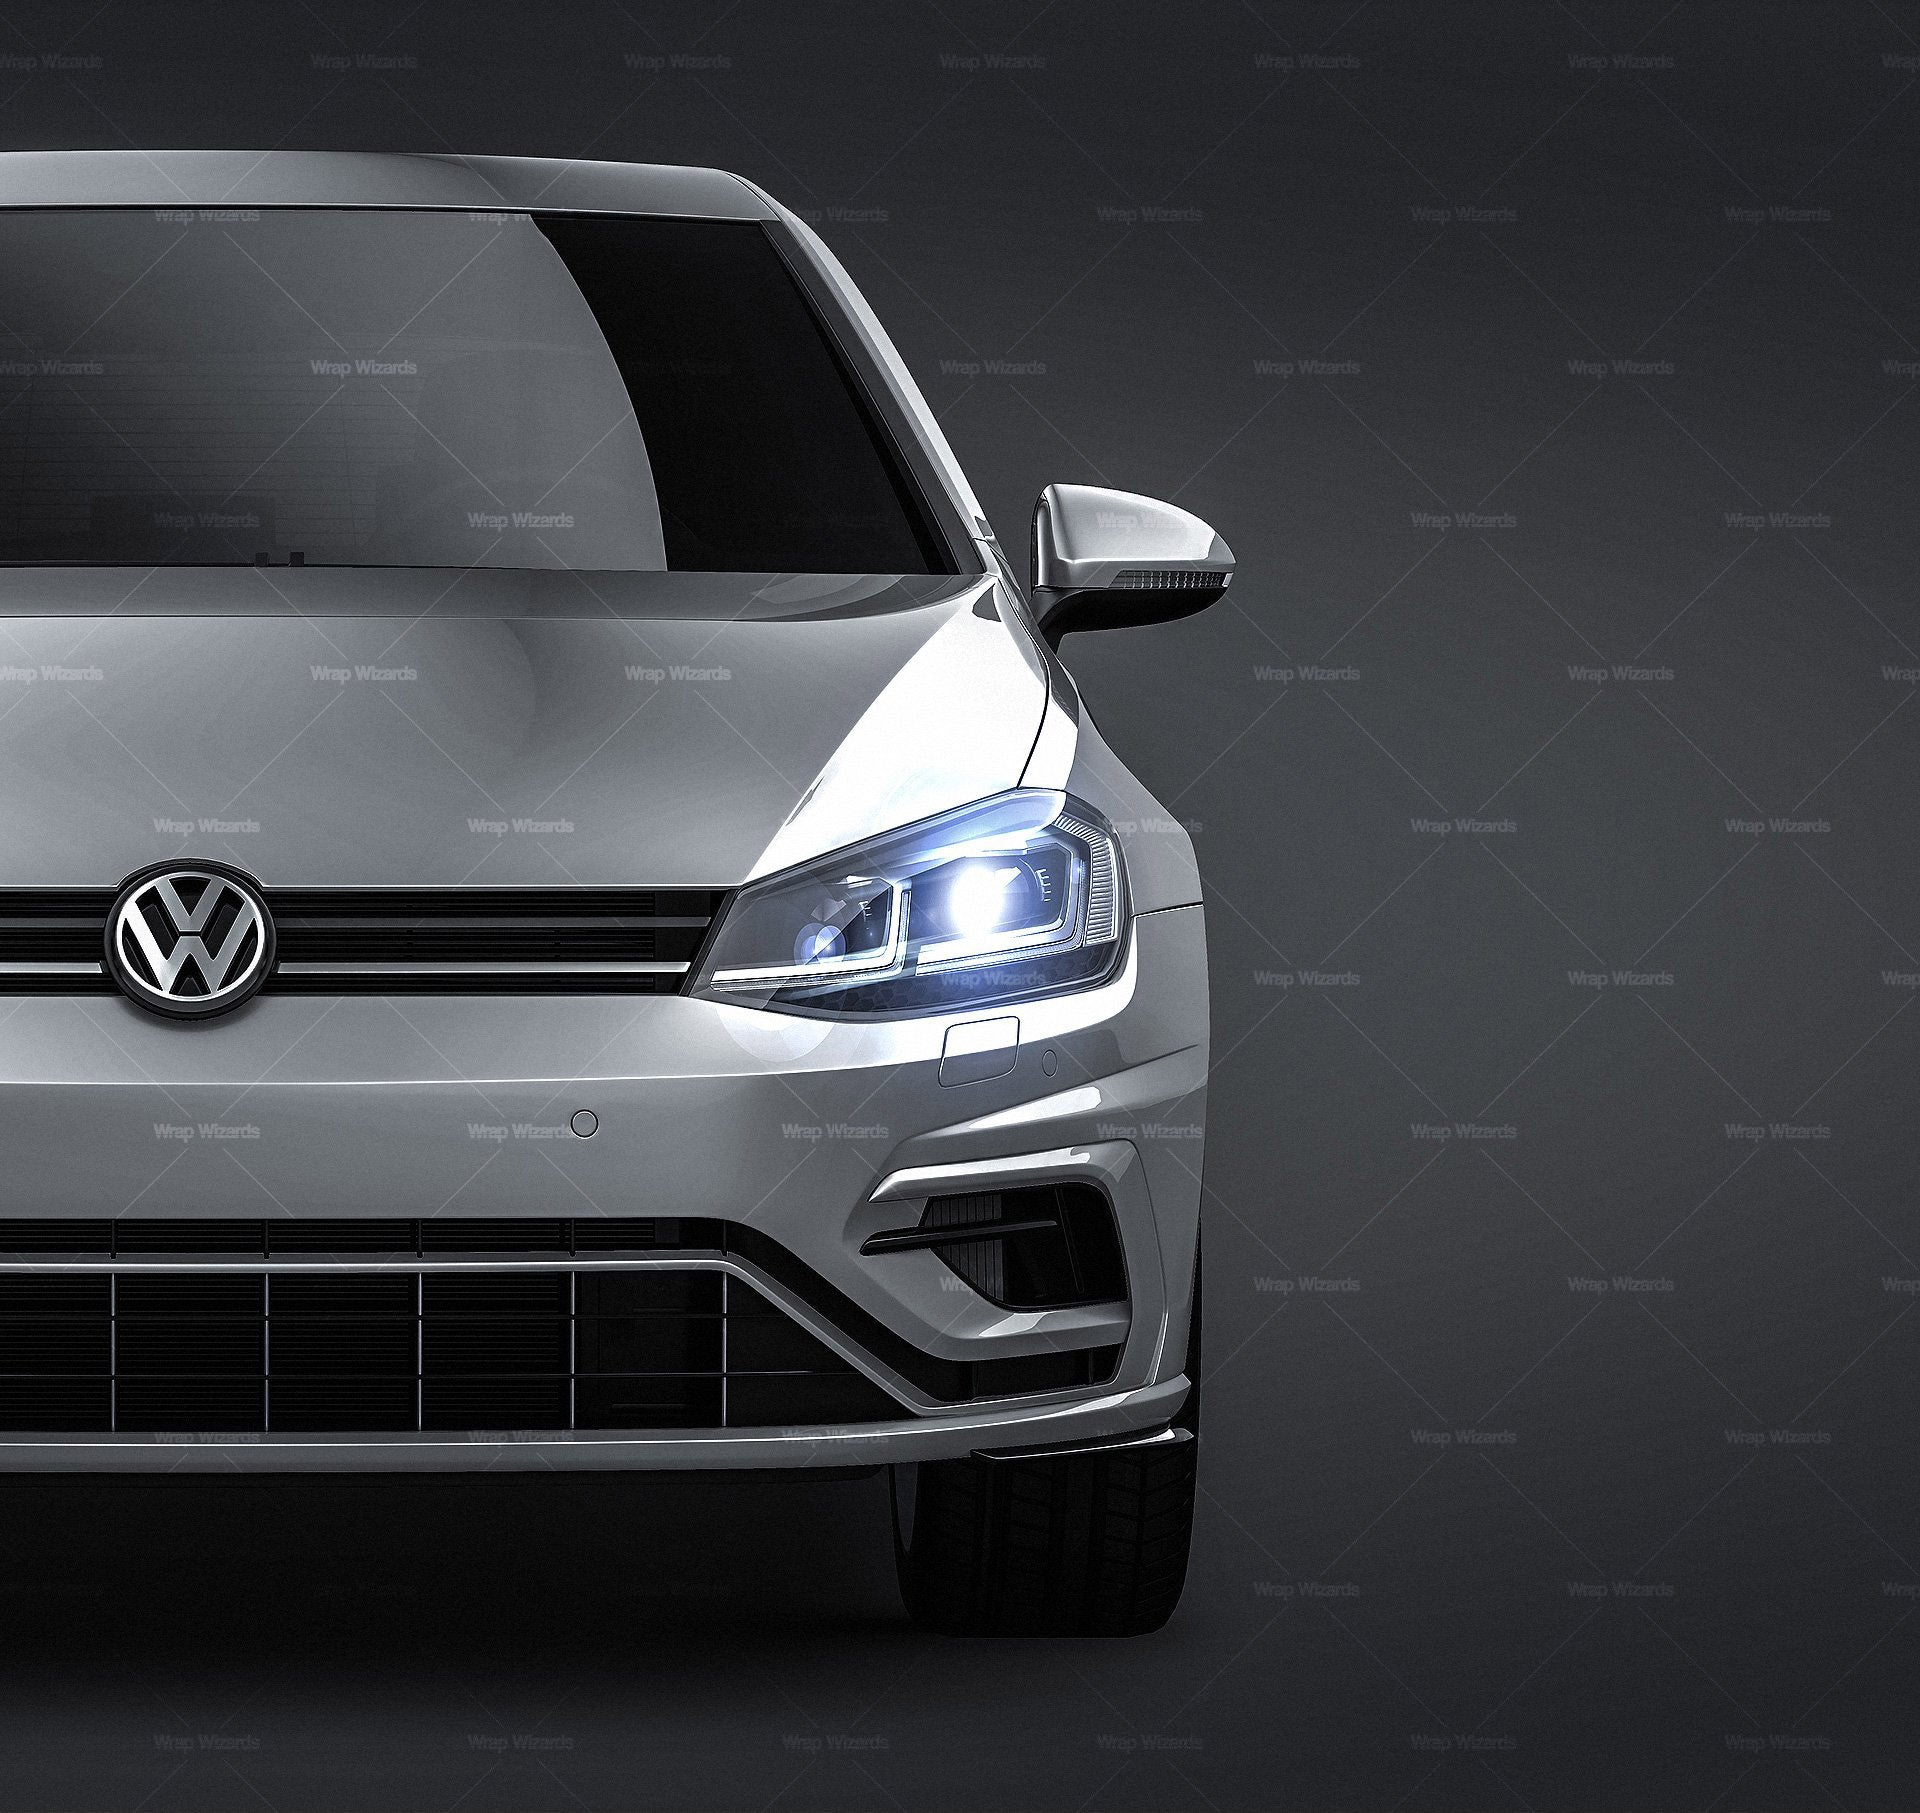 Volkswagen Golf R 2018 - all sides Car Mockup Template.psd